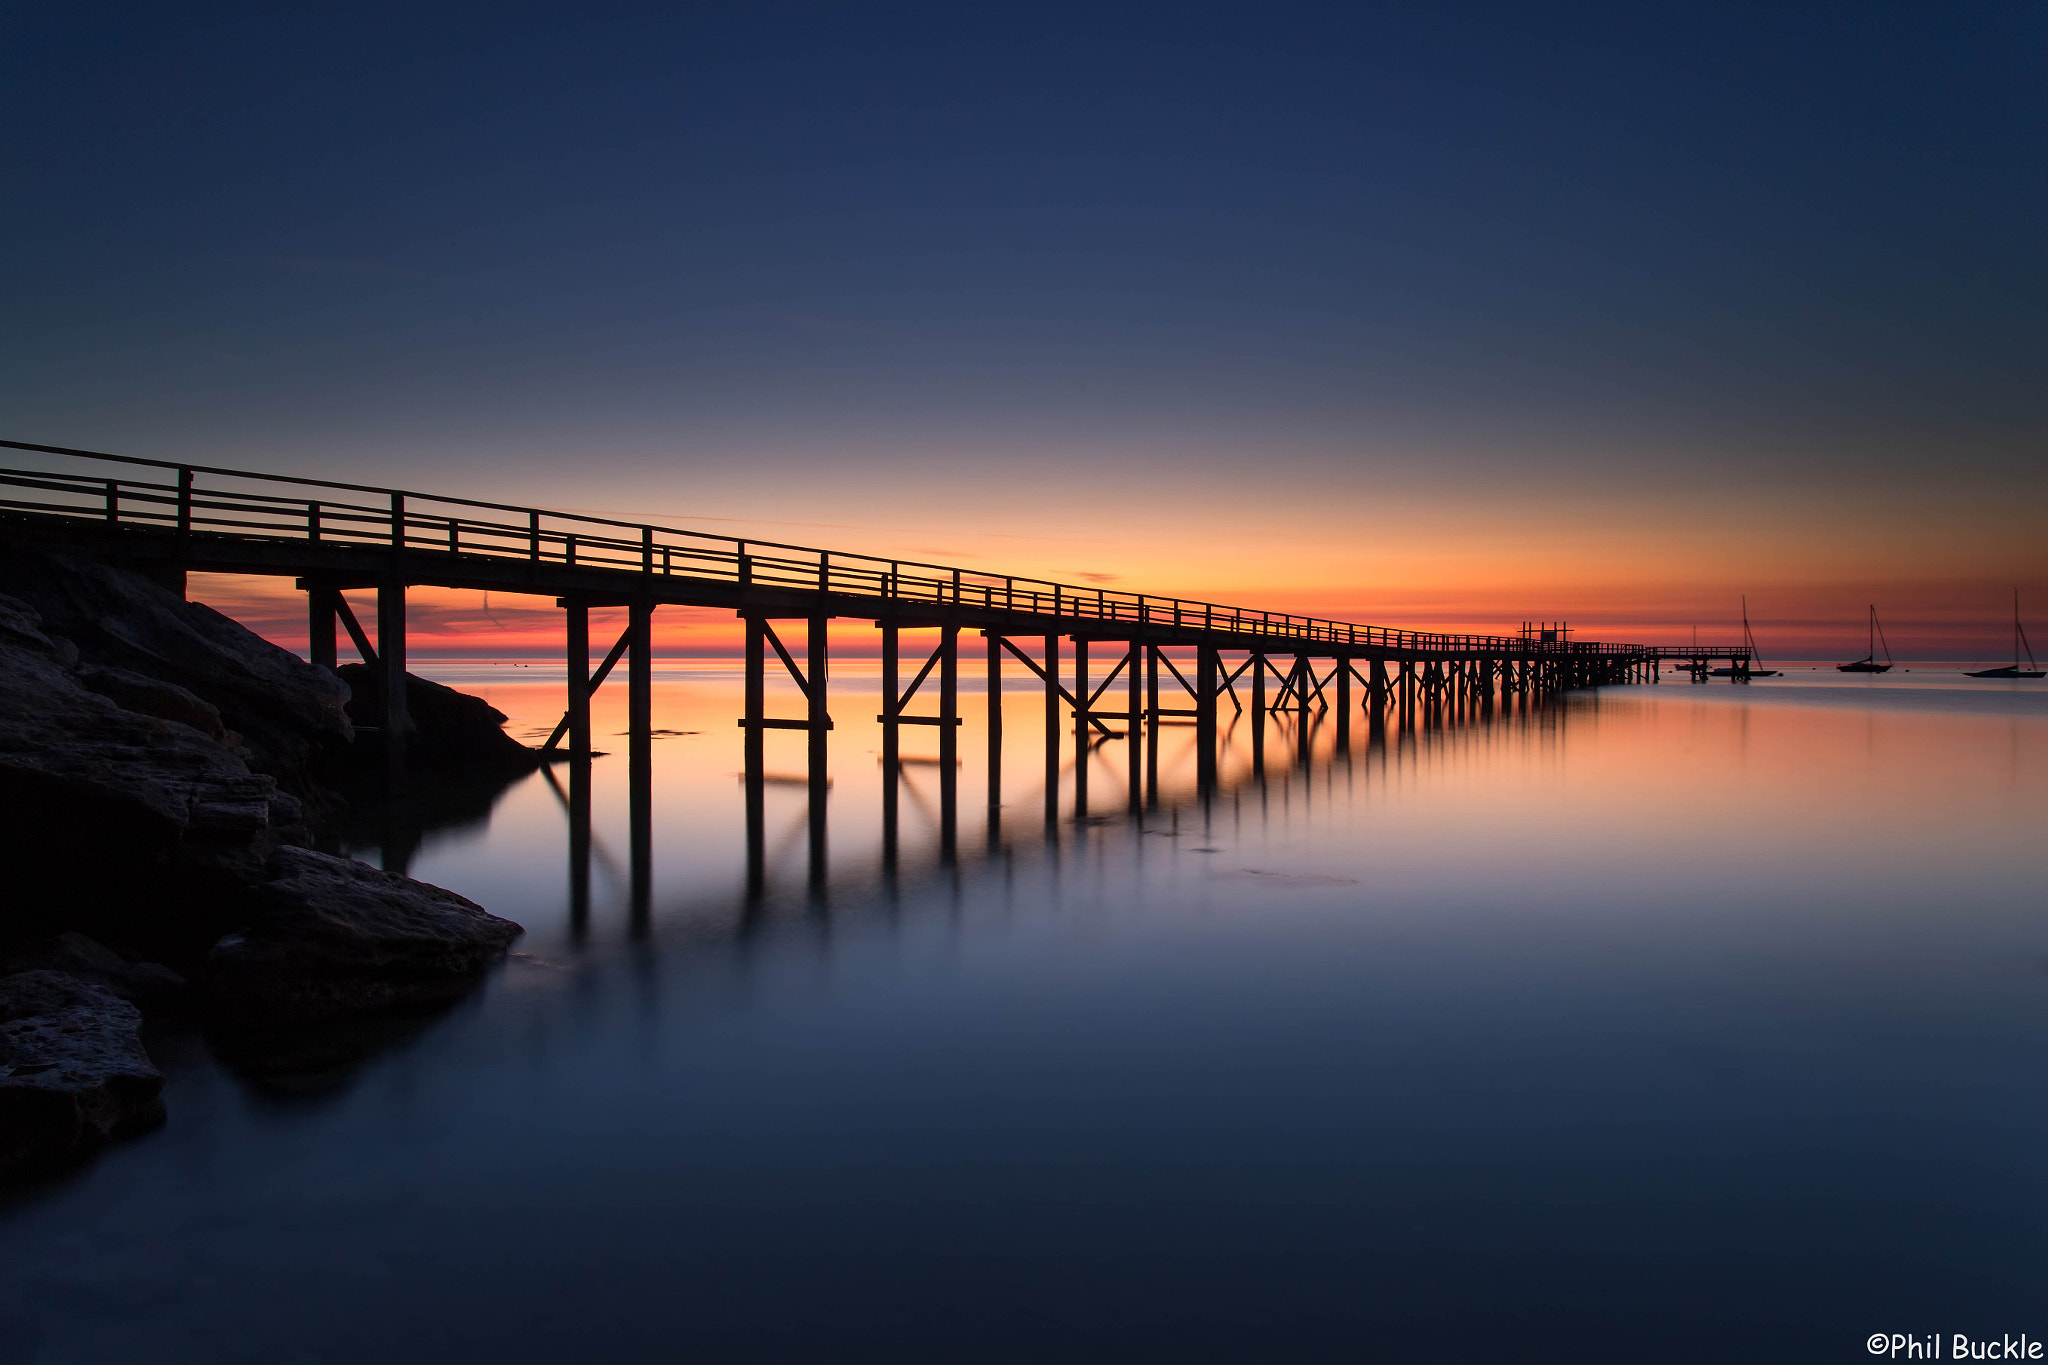 Photograph Plage Des Dames Jetty by Phil Buckle on 500px